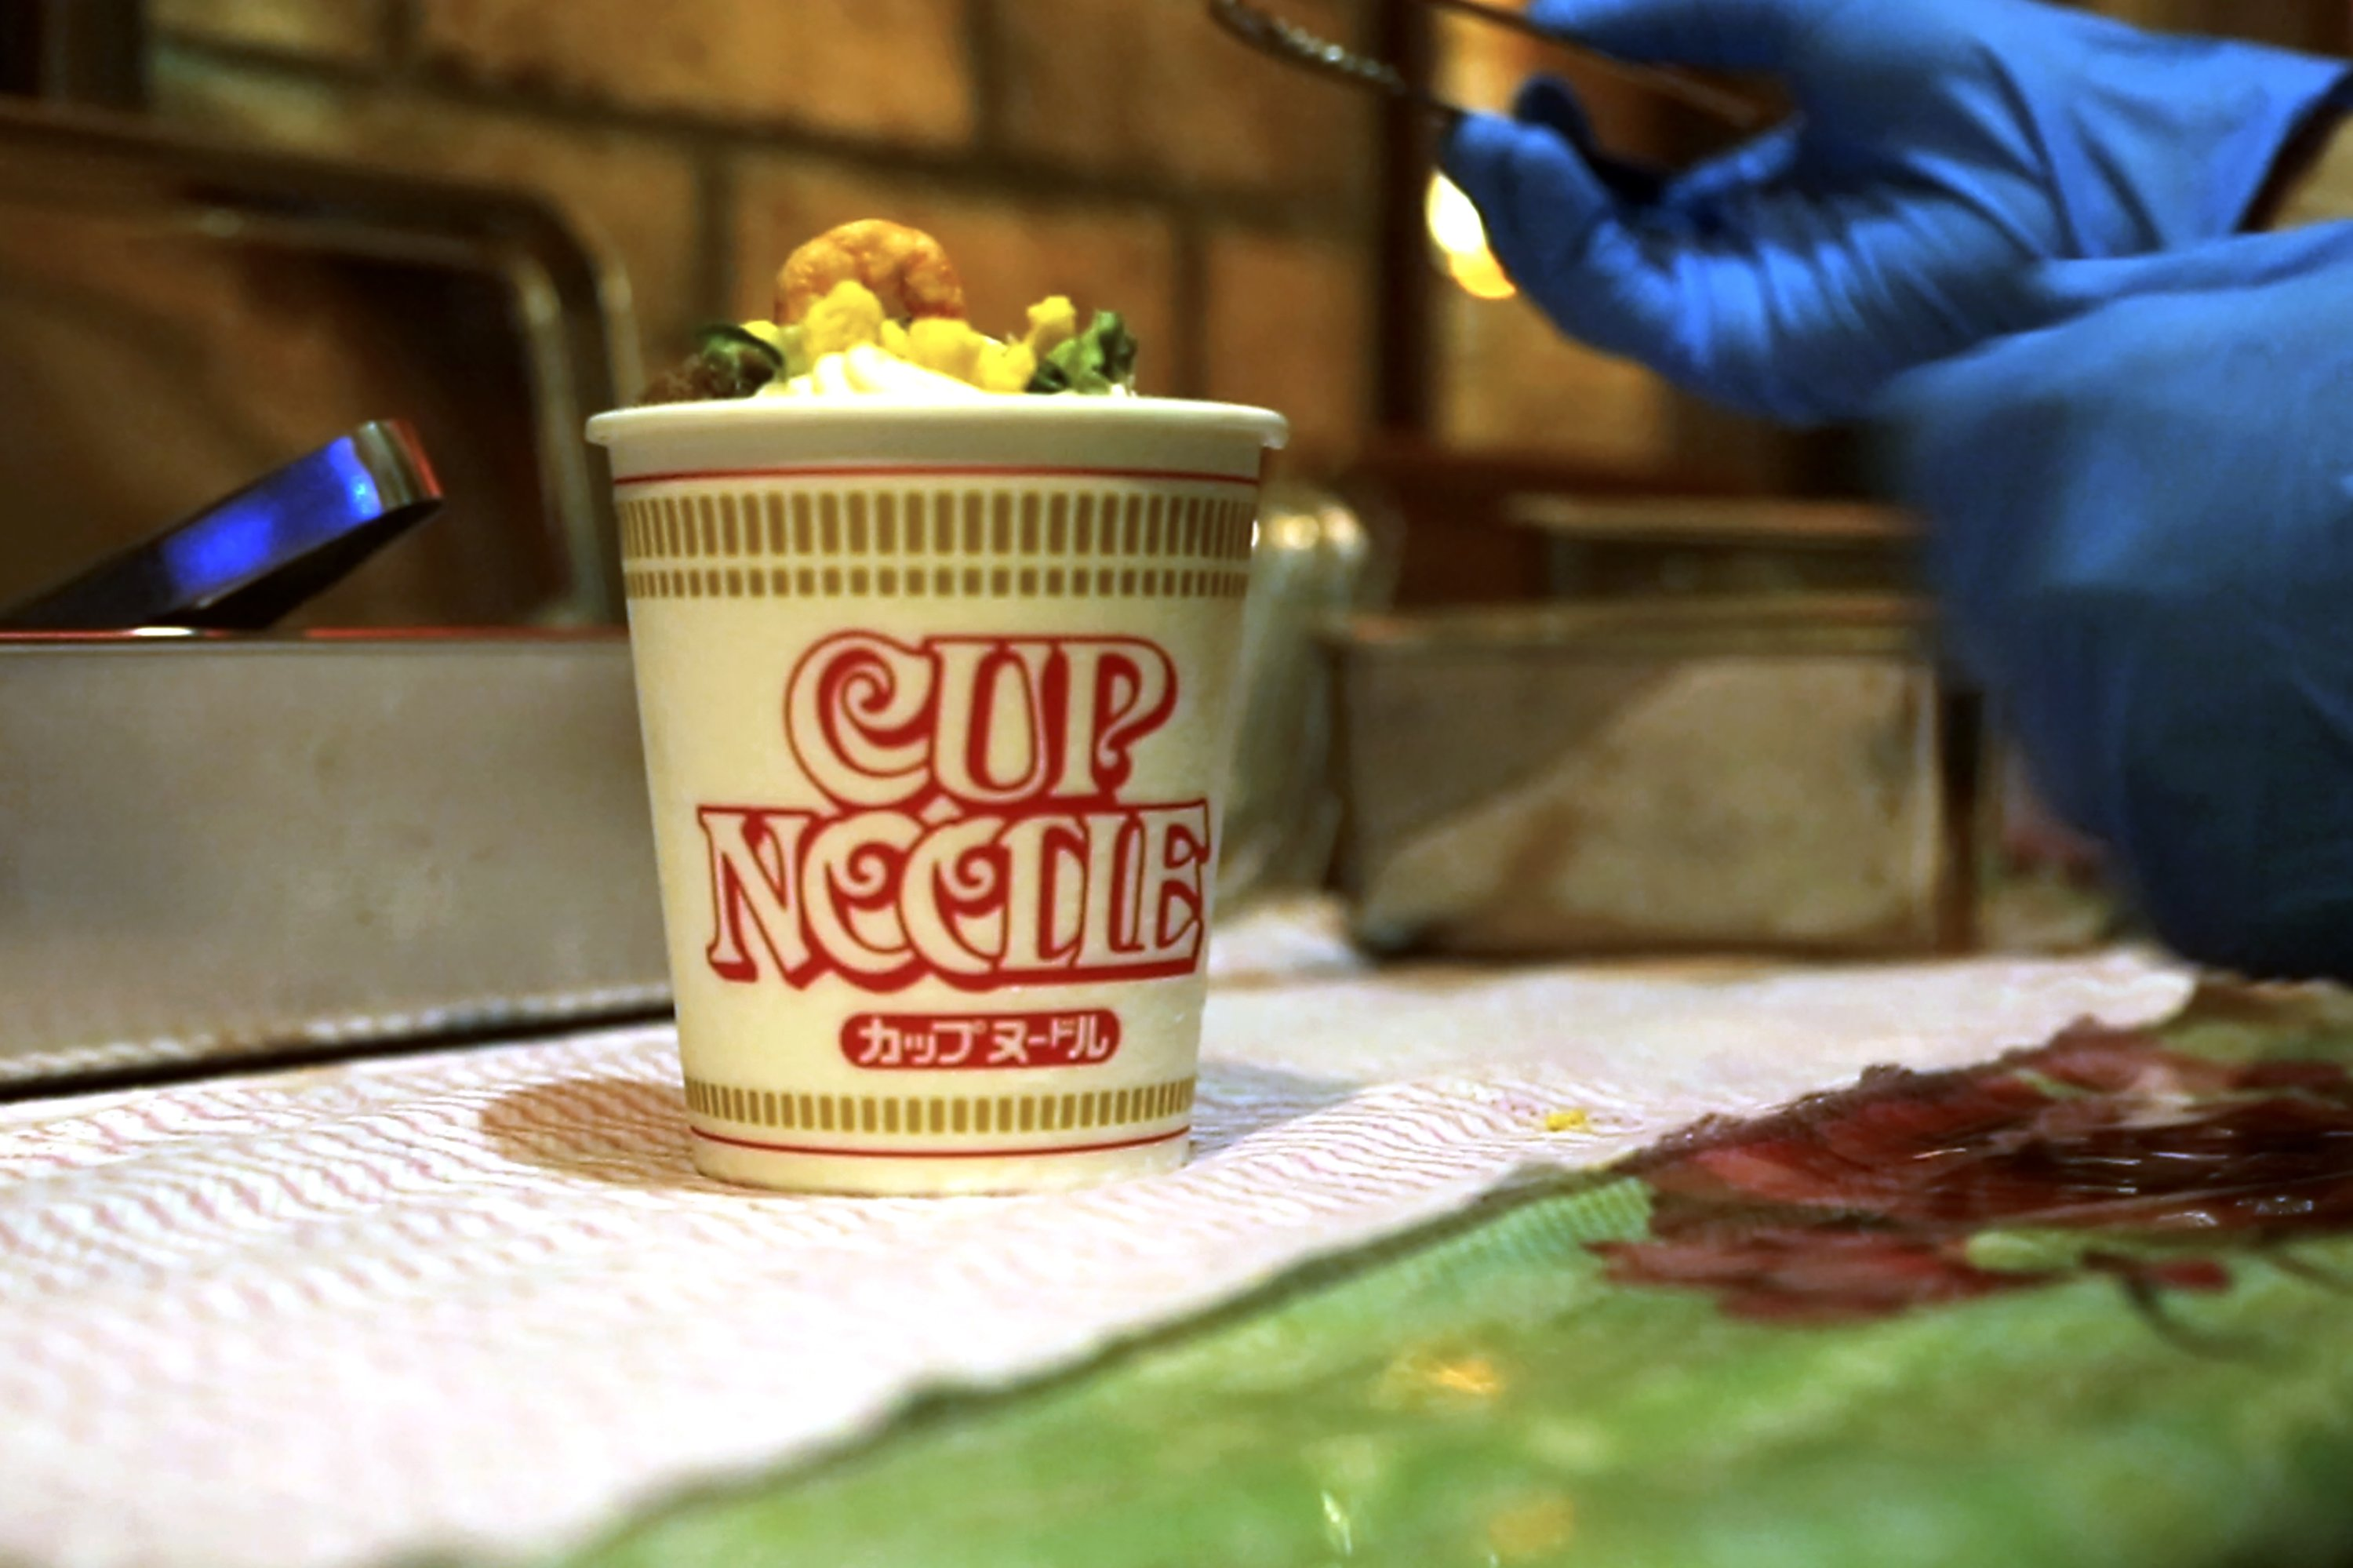 A Cup Noodle ice cream, made with the powdered soup of Cup Noodle and topped with freeze-fried shrimp, onions, egg and meat, is prepared to be eaten at the Cup Noodles Museum in Yokohama, Japan, on Friday, Aug. 6, 2021. (AP Photo)